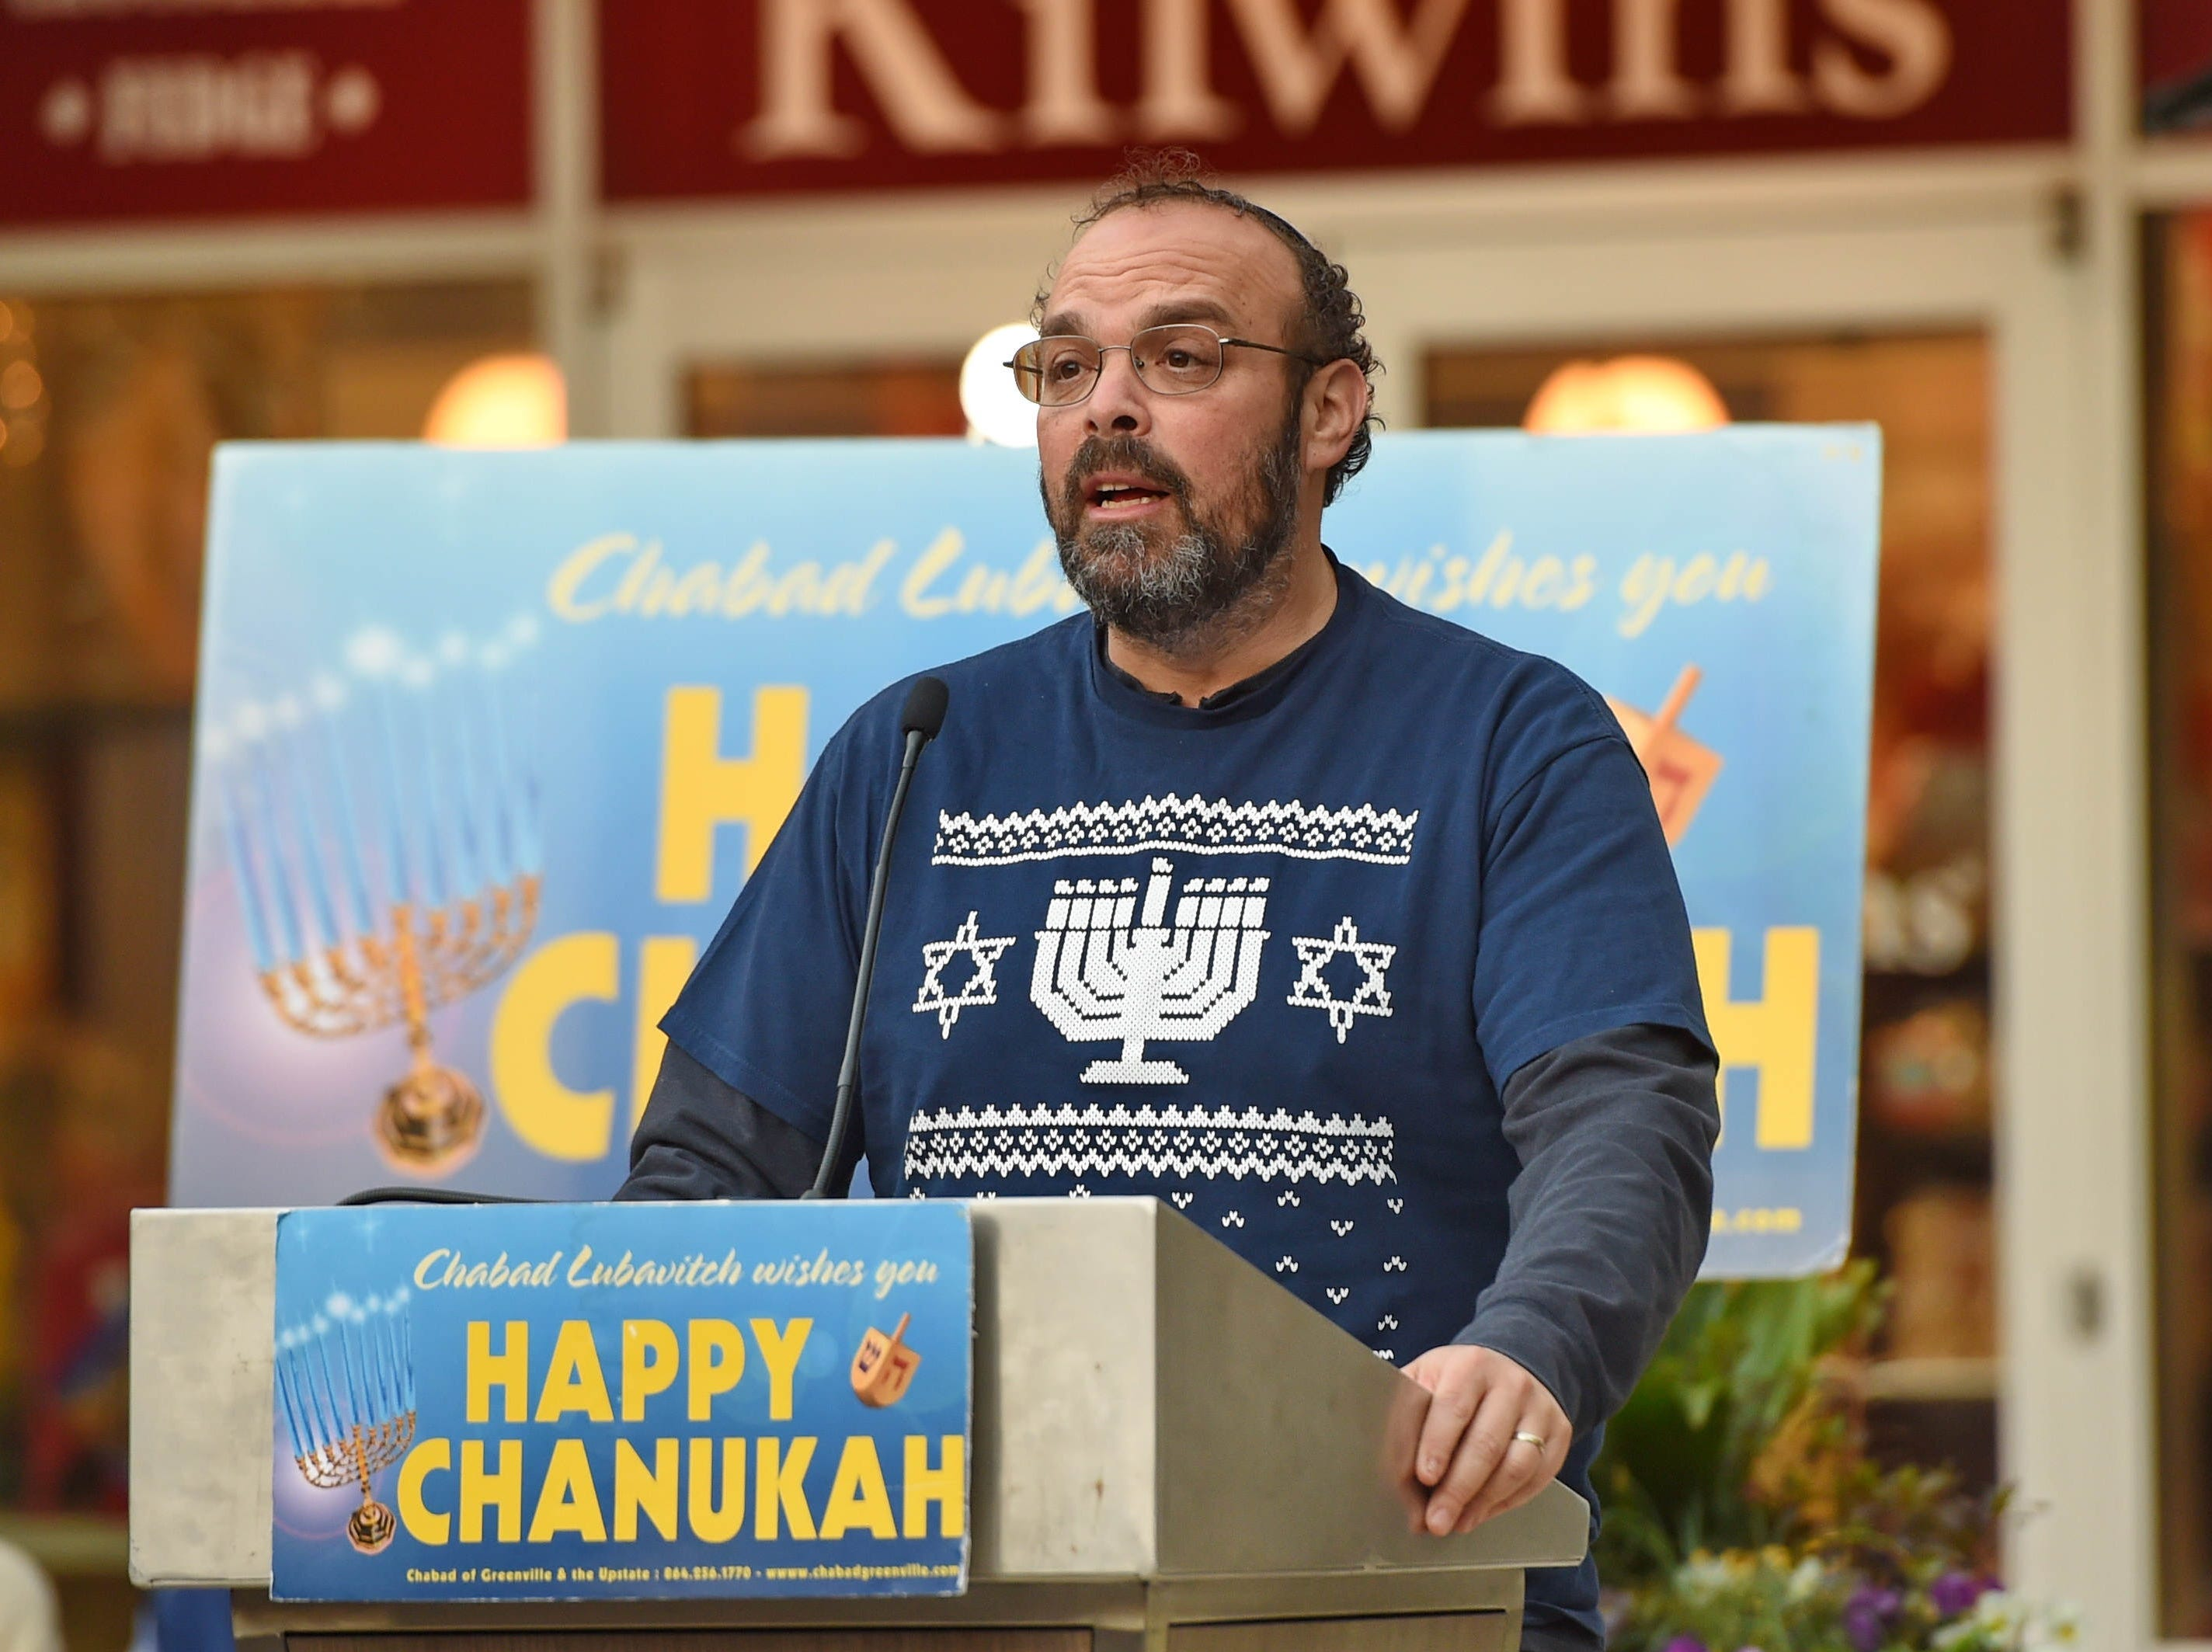 Rabbi Mathew Markos leads the crowd in a prayer for peace. The annual Jewish celebration of Chanukah was kicked off with the lighting of the Menorah at NOMA Square Sunday, Dec. 2, 2018.